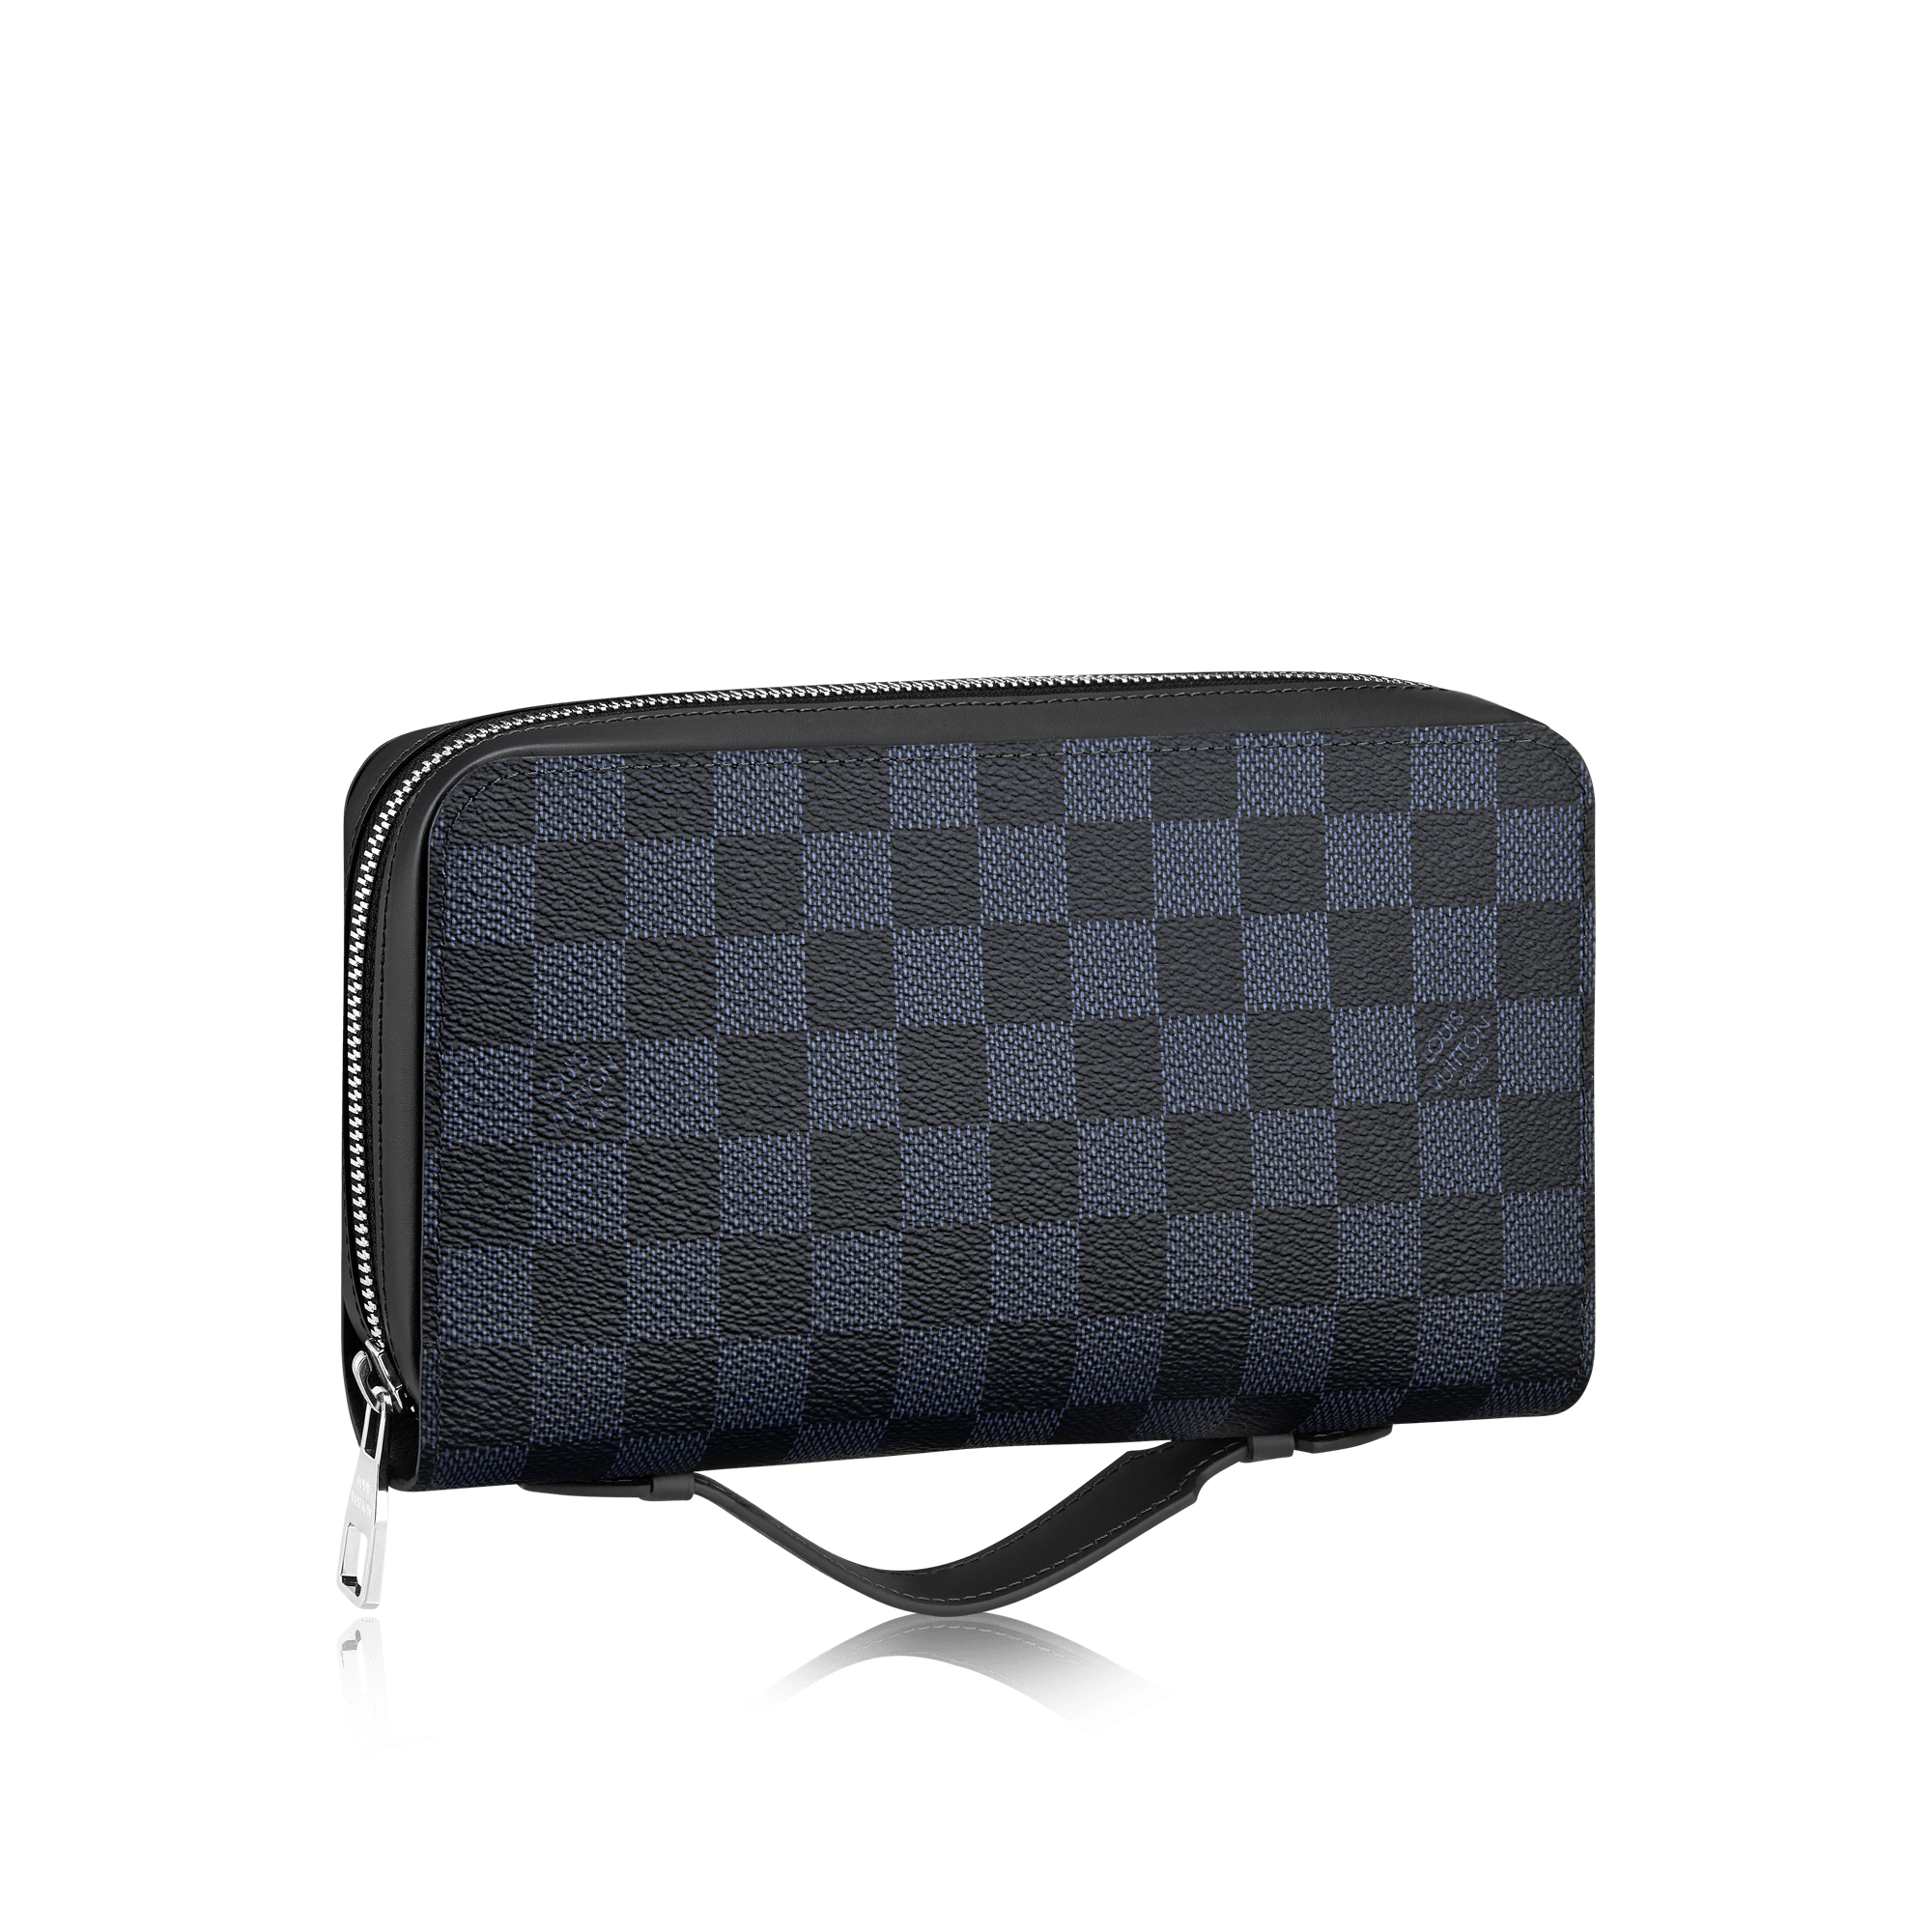 a18e9855b28 For the man on the go, the ultra-functional Zippy XL from Louis Vuitton